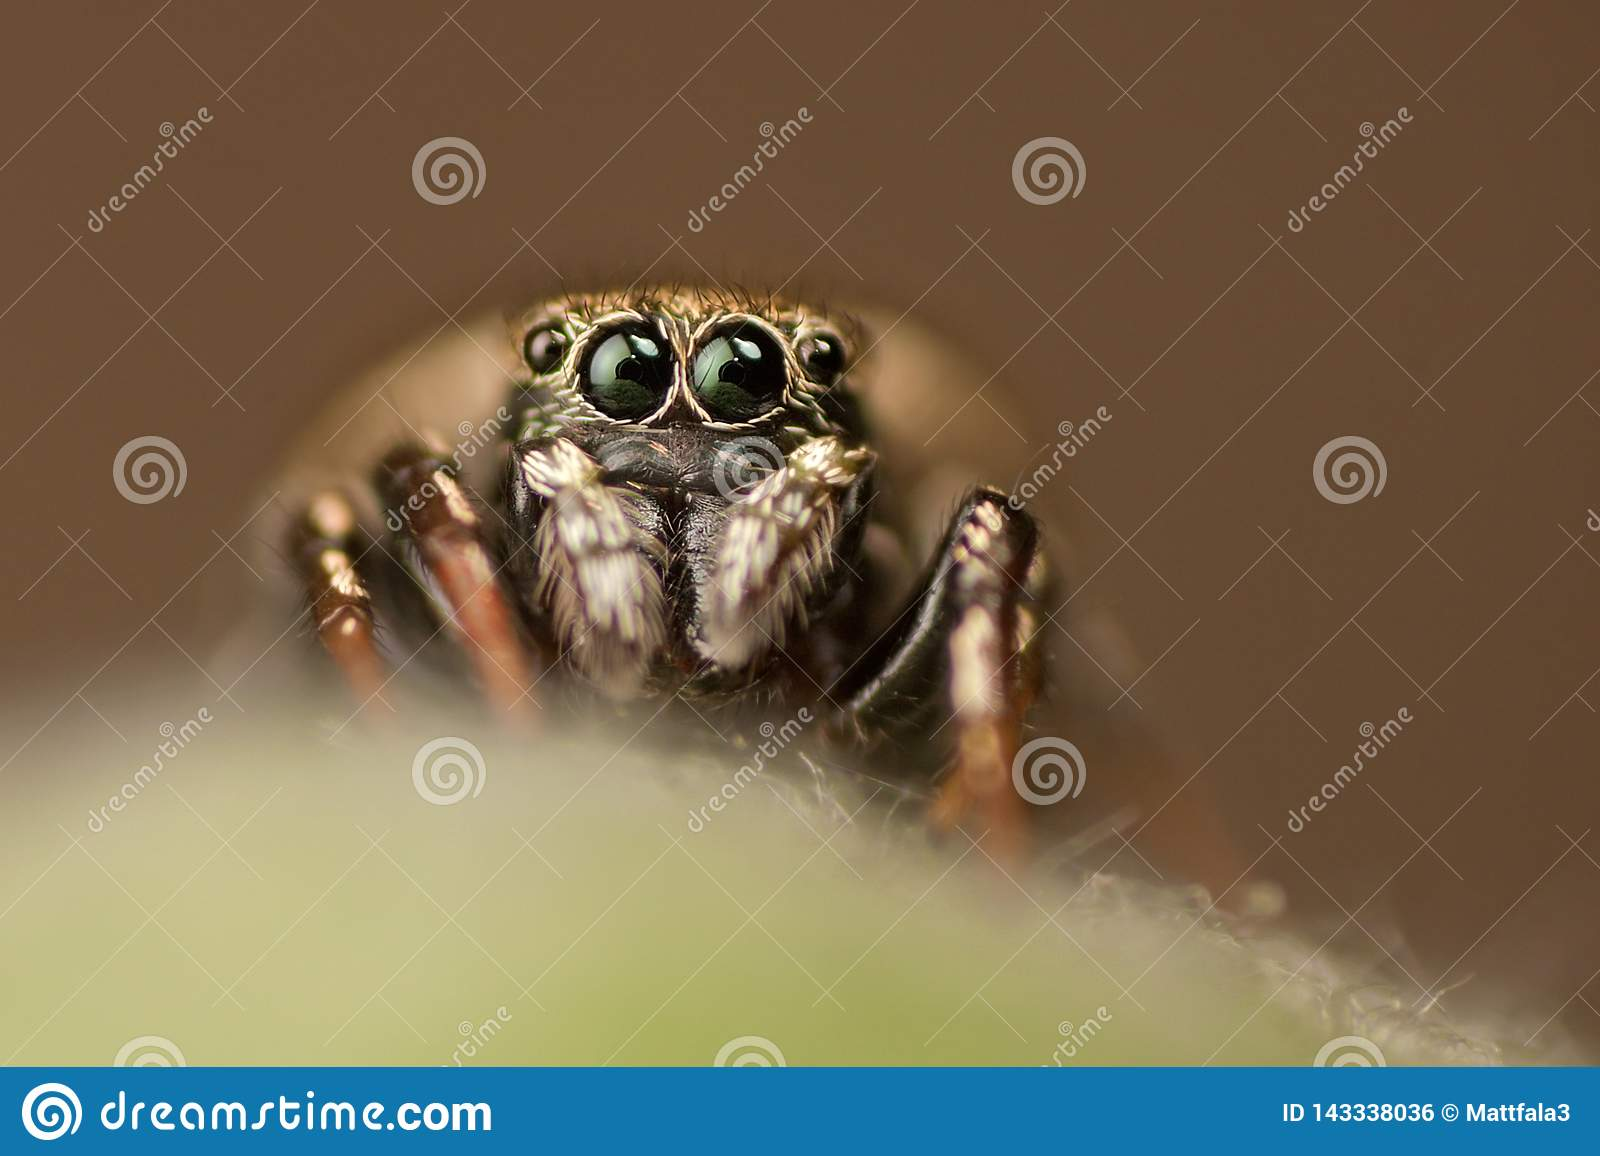 Jumping spider looking at the camera